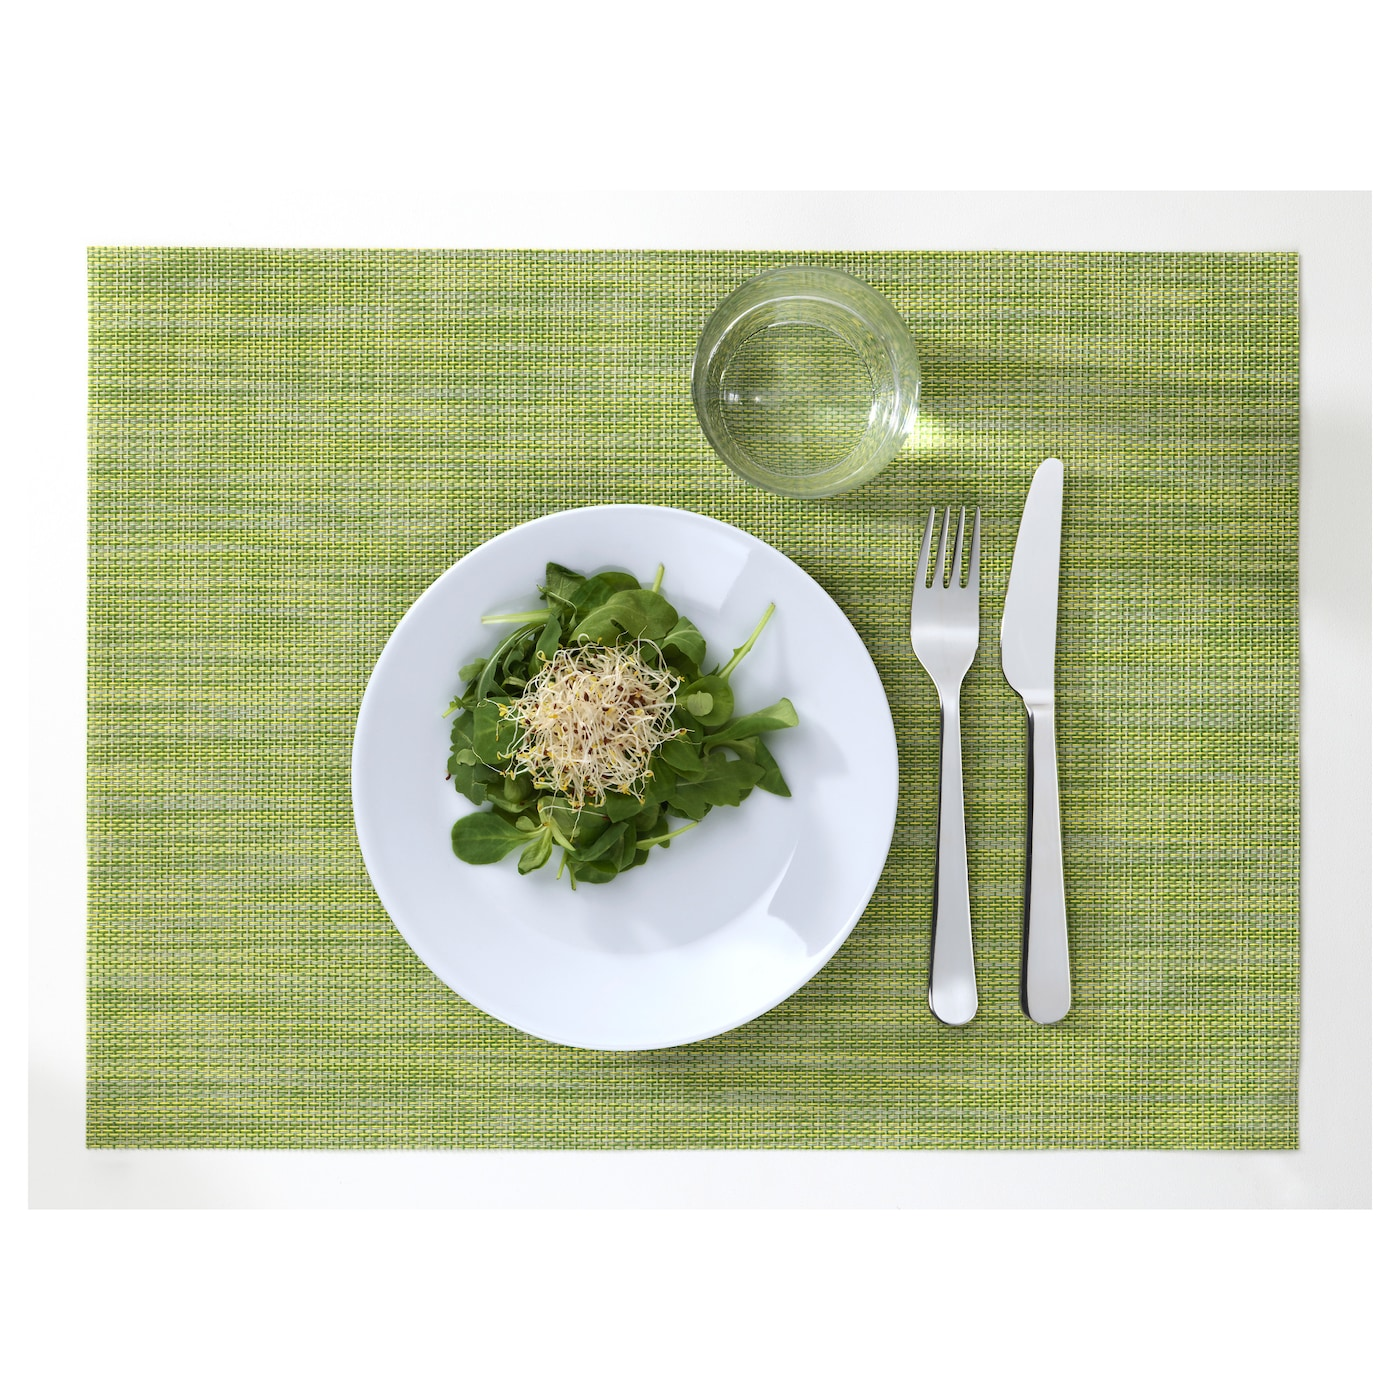 IKEA SNOBBIG place mat Protects the table top surface and reduces noise from plates and cutlery.